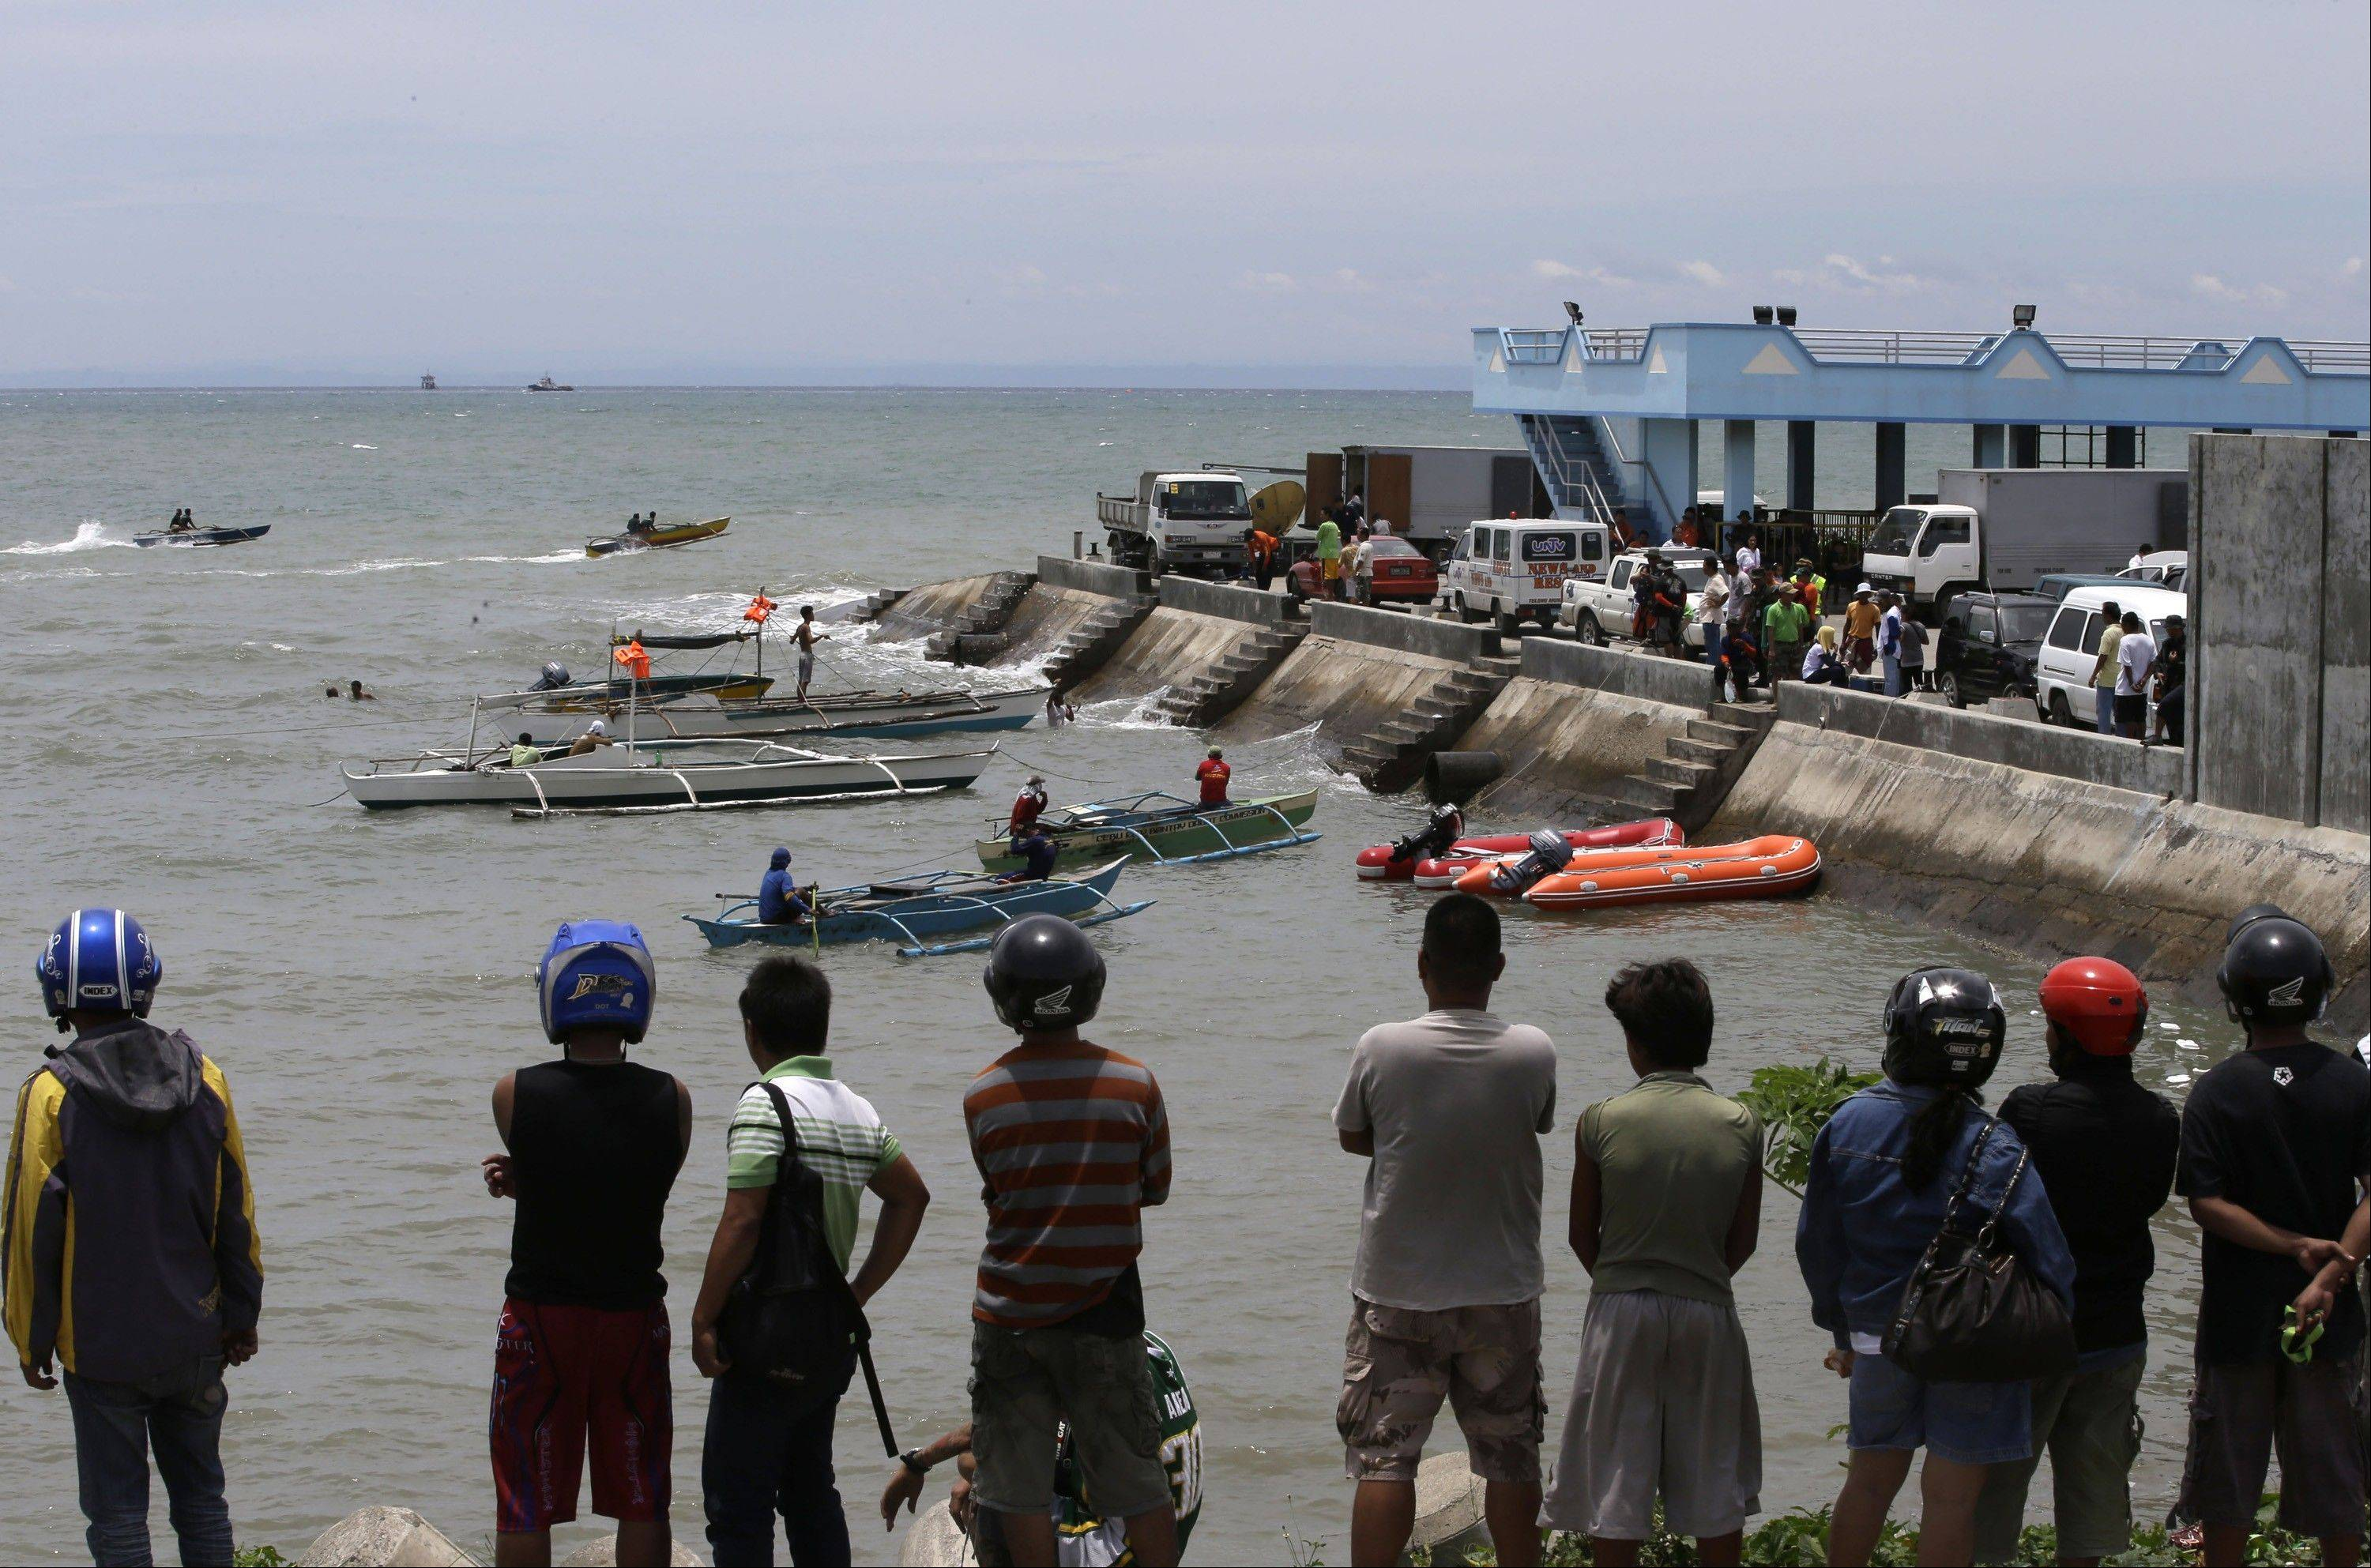 A crowd watches as divers continue their search and rescue operation off Talisay coast, Cebu province Sunday, Aug. 18, 2013 following Friday night�s collision of the passenger ferry MV Thomas Aquinas and the cargo ship MV Sulpicio Express Siete in central Philippines.